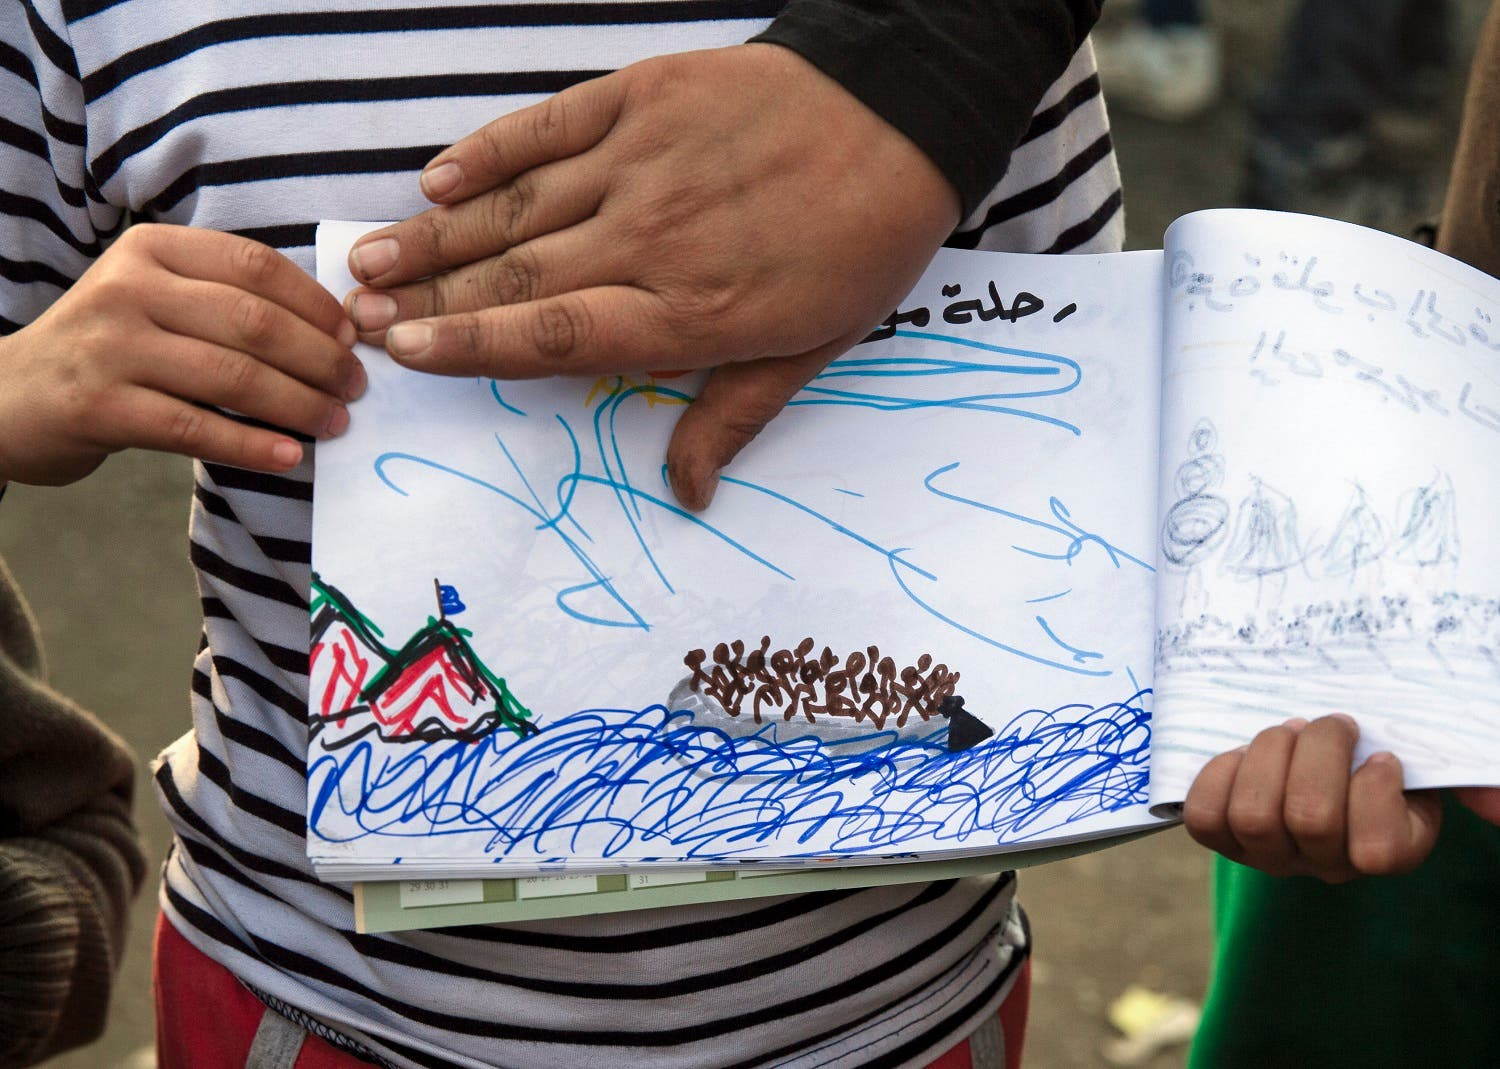 Shaharzad Hassan, 8 year-old from the Syrian city of Aleppo poses with a drawing she made, at the northern Greek border station of Idomeni, Friday, March 11, 2016. At an overcrowded refugee camp on the Greek-Macedonian border, 8-year-old Shaharzad Hassan draws pictures of the harrowing events in her life over the past 18 months: Pictures of death in her home town of Aleppo, Syria, and her perilous journey to Europe. (AP Photo/Vadim Ghirda)